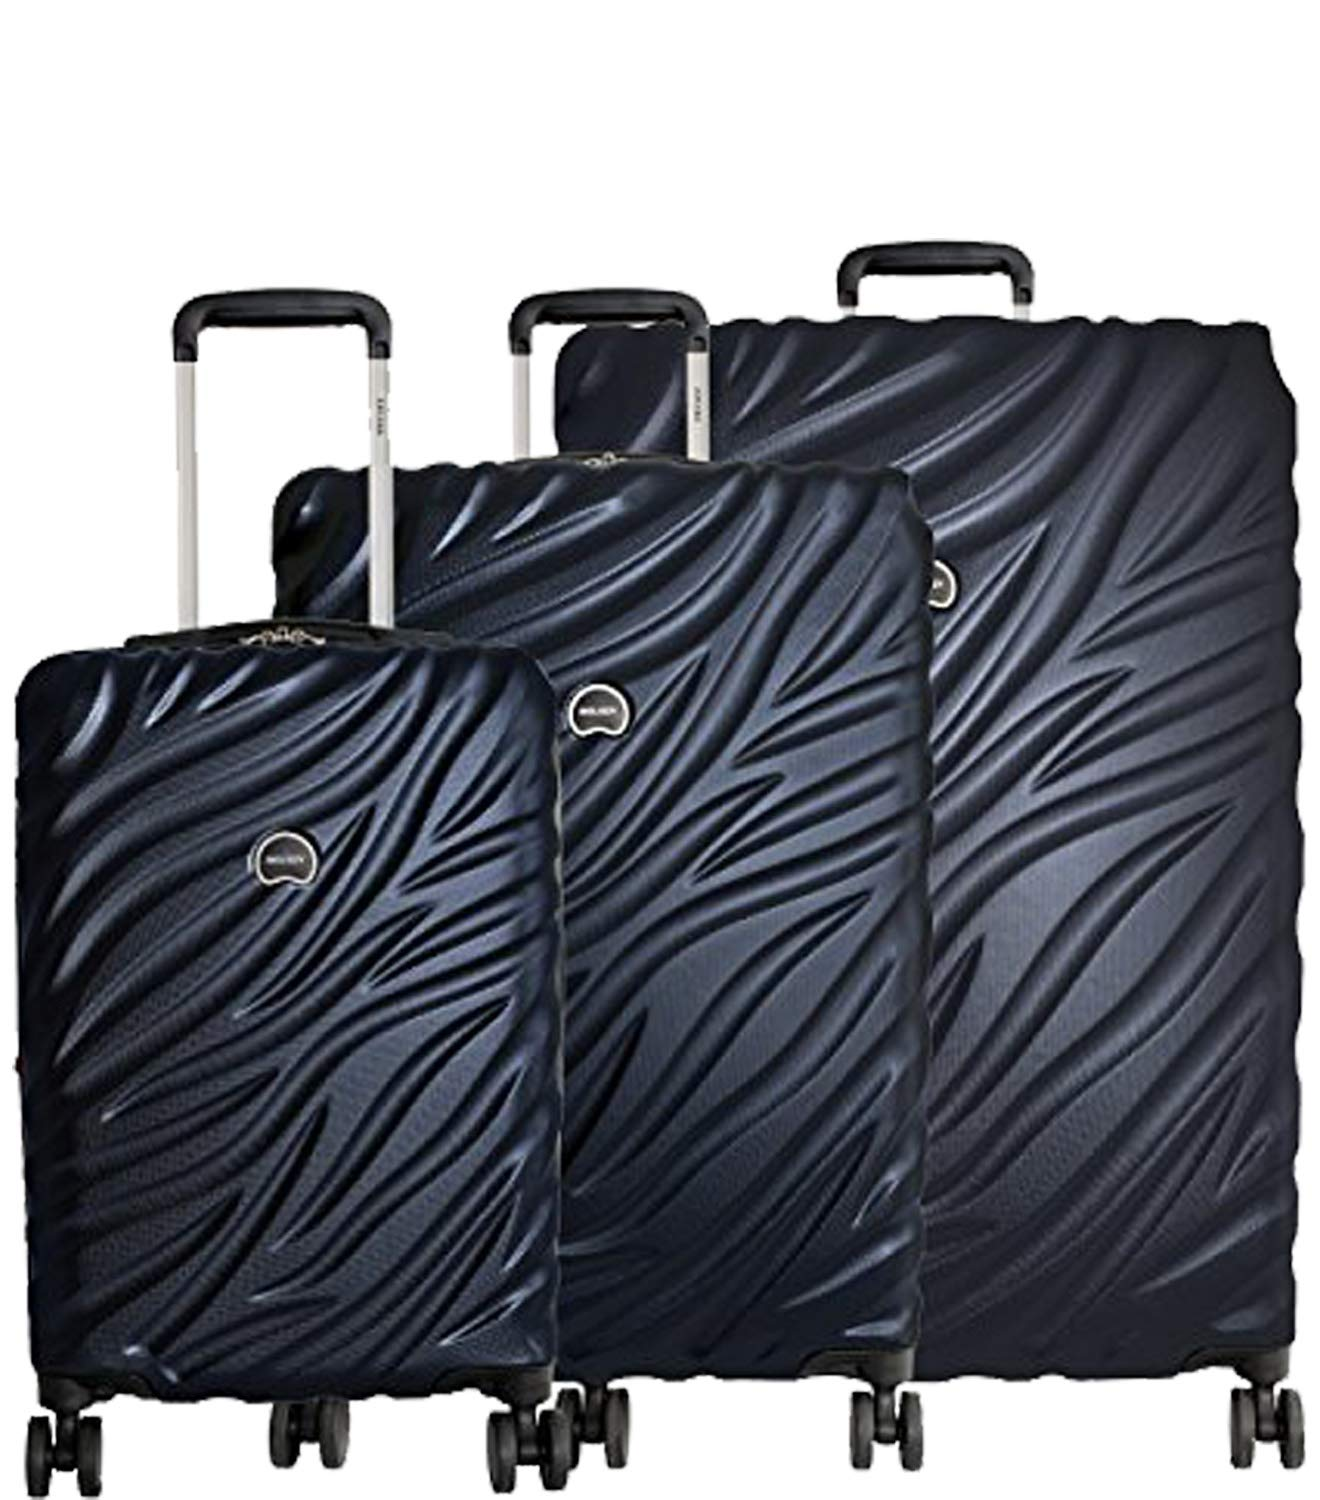 Delsey Paris Alexis 3-Piece Lightweight Luggage Set Hardside Spinner Suitcase with TSA Lock (21